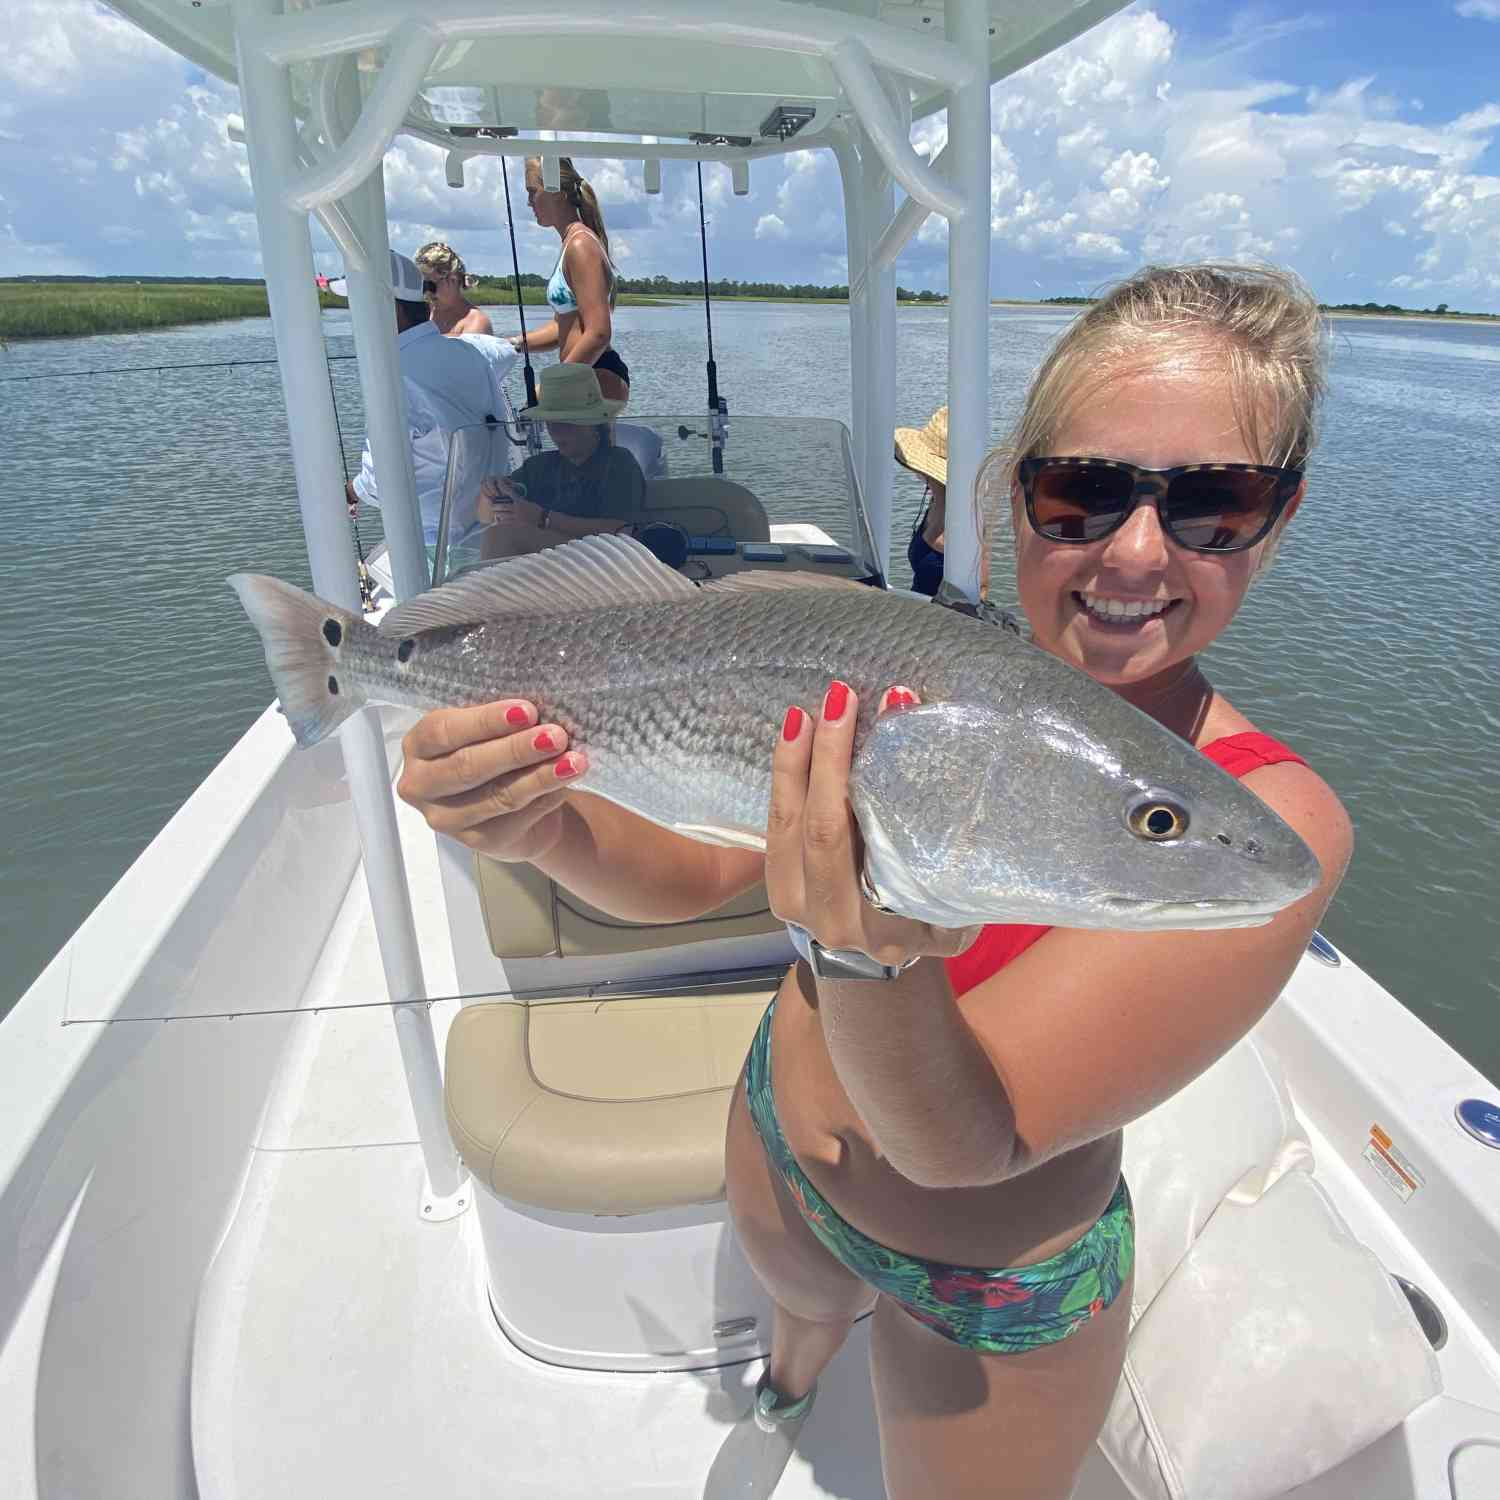 Title: Red fish - On board their Sportsman Masters 247 Bay Boat - Location: Folly beach, South Carolina. Participating in the Photo Contest #SportsmanAugust2020